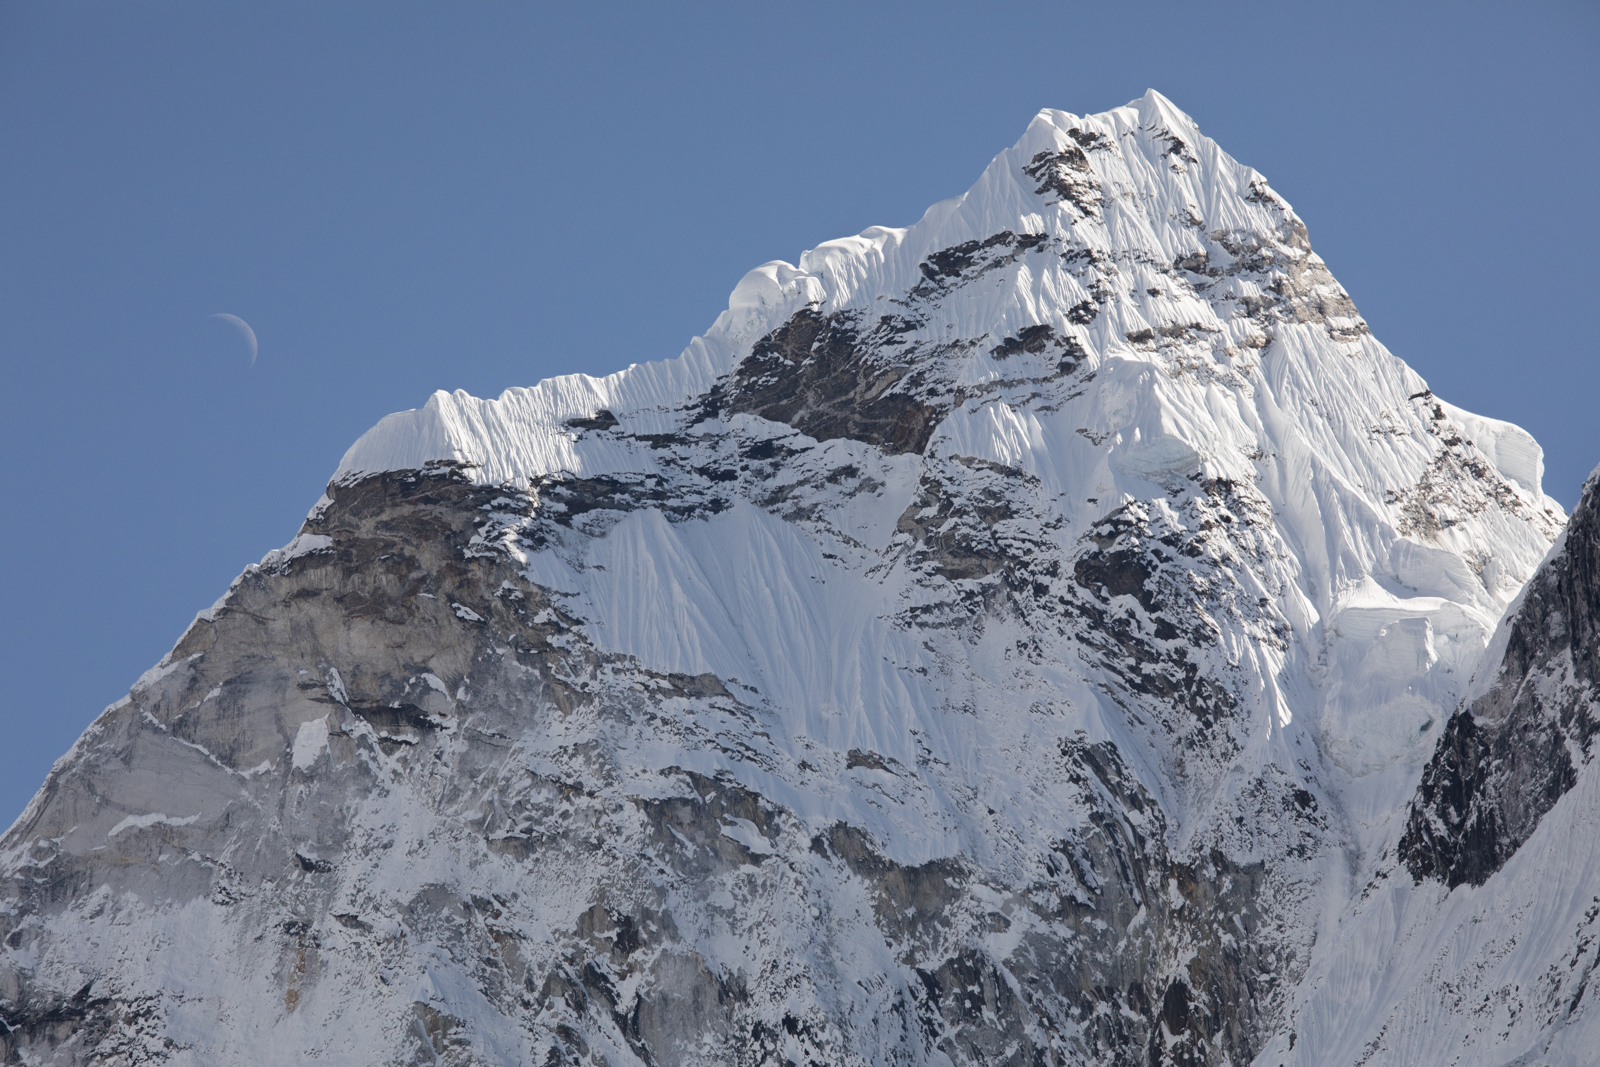 Thamserku 6,623 m / 21,729 ft (Elevation credit: PeakFinder)